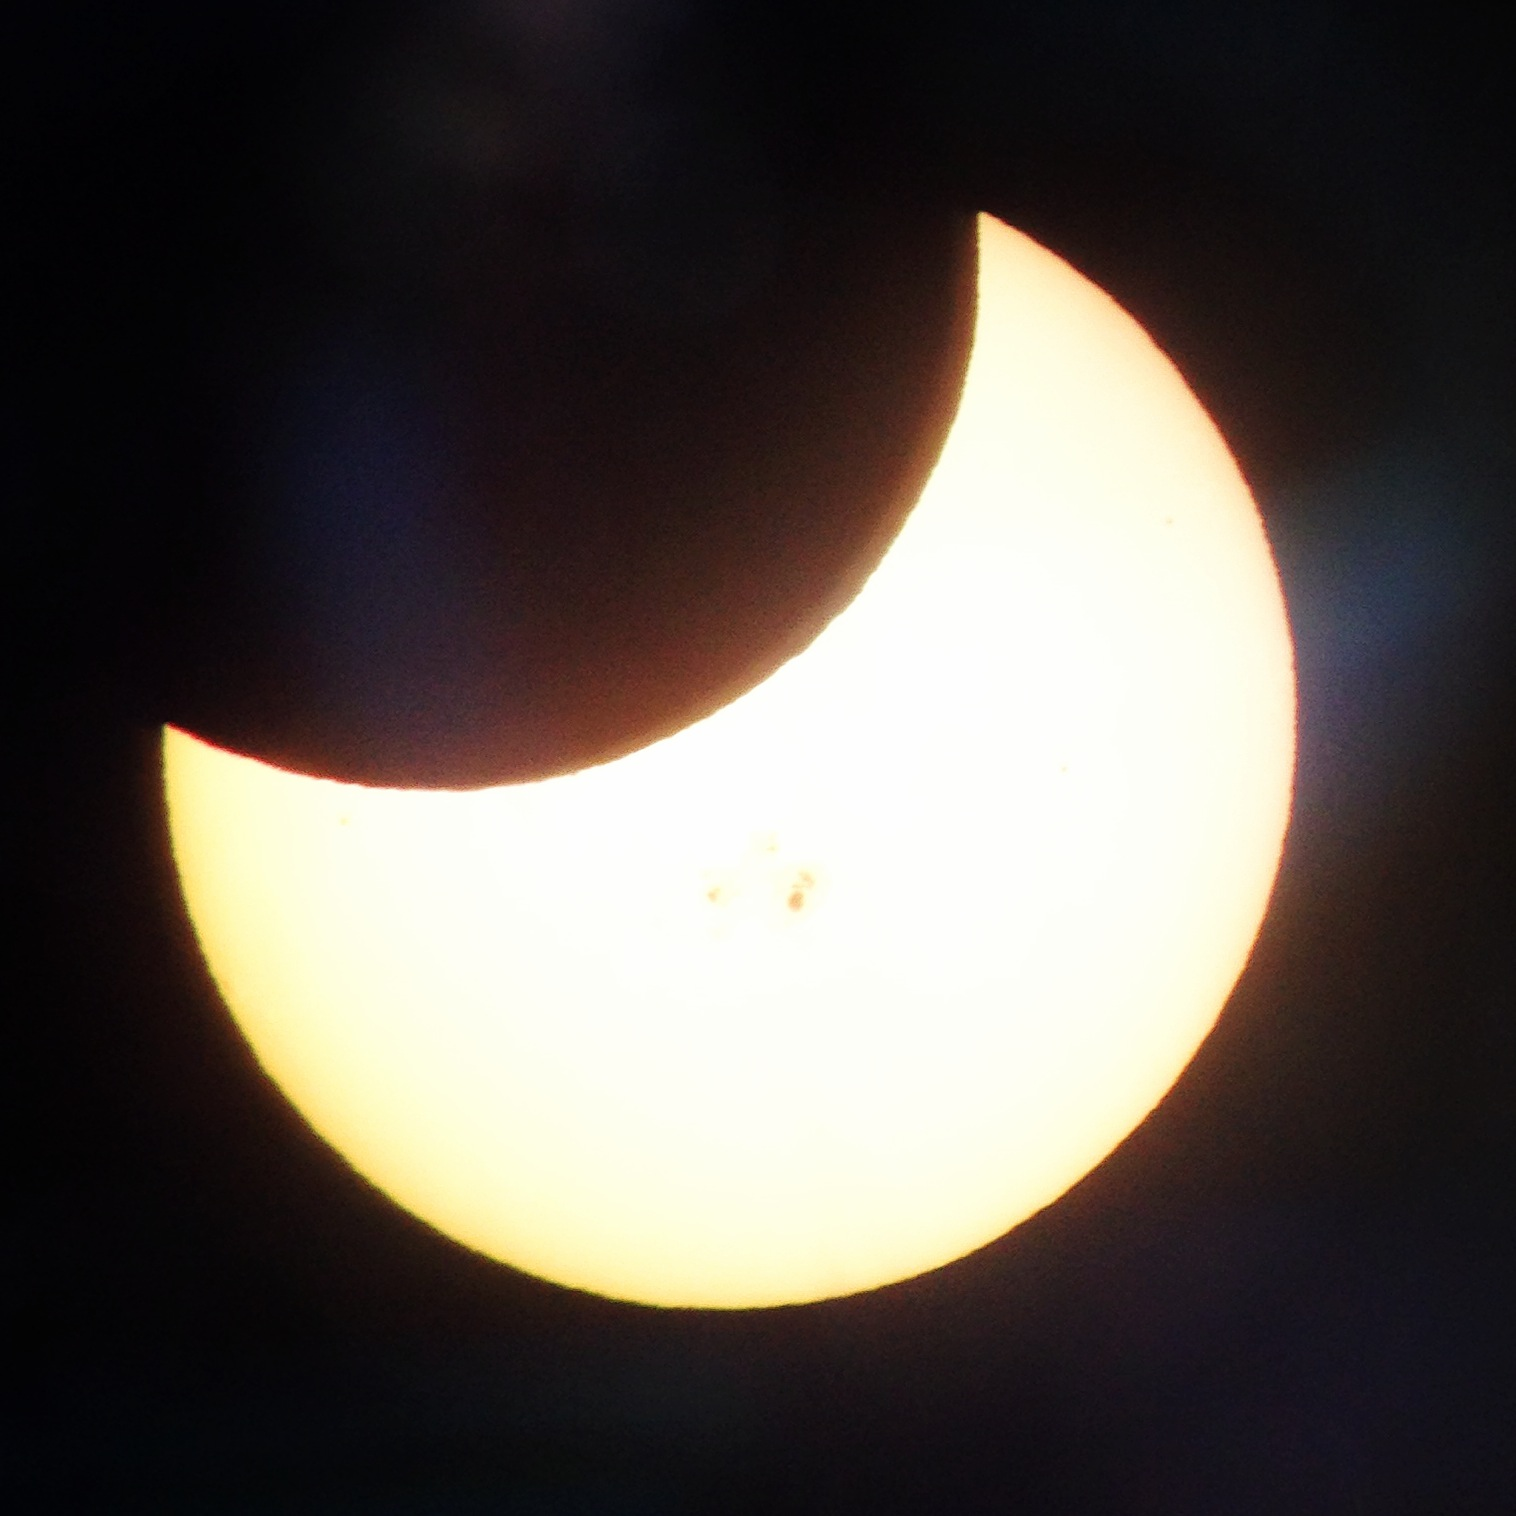 The moon obscured about 40 percent of the sun in Thursday's eclipse. (Courtesy of Shannon Rosa)